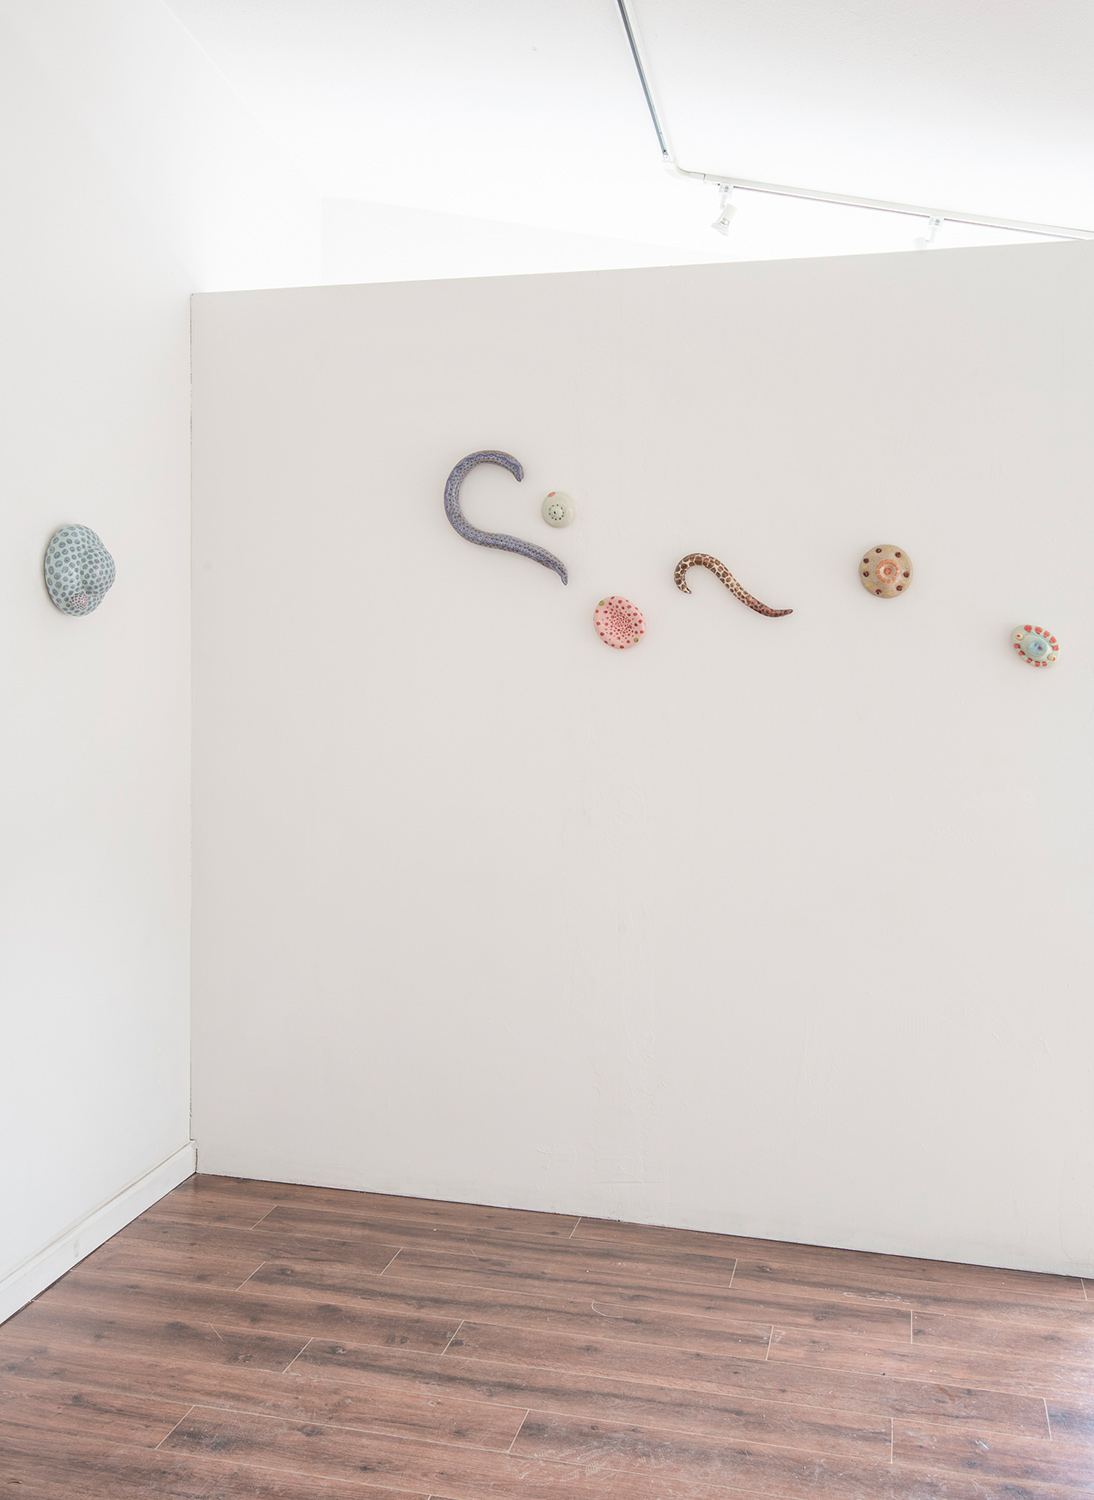 Installation view (Eva Kwong)